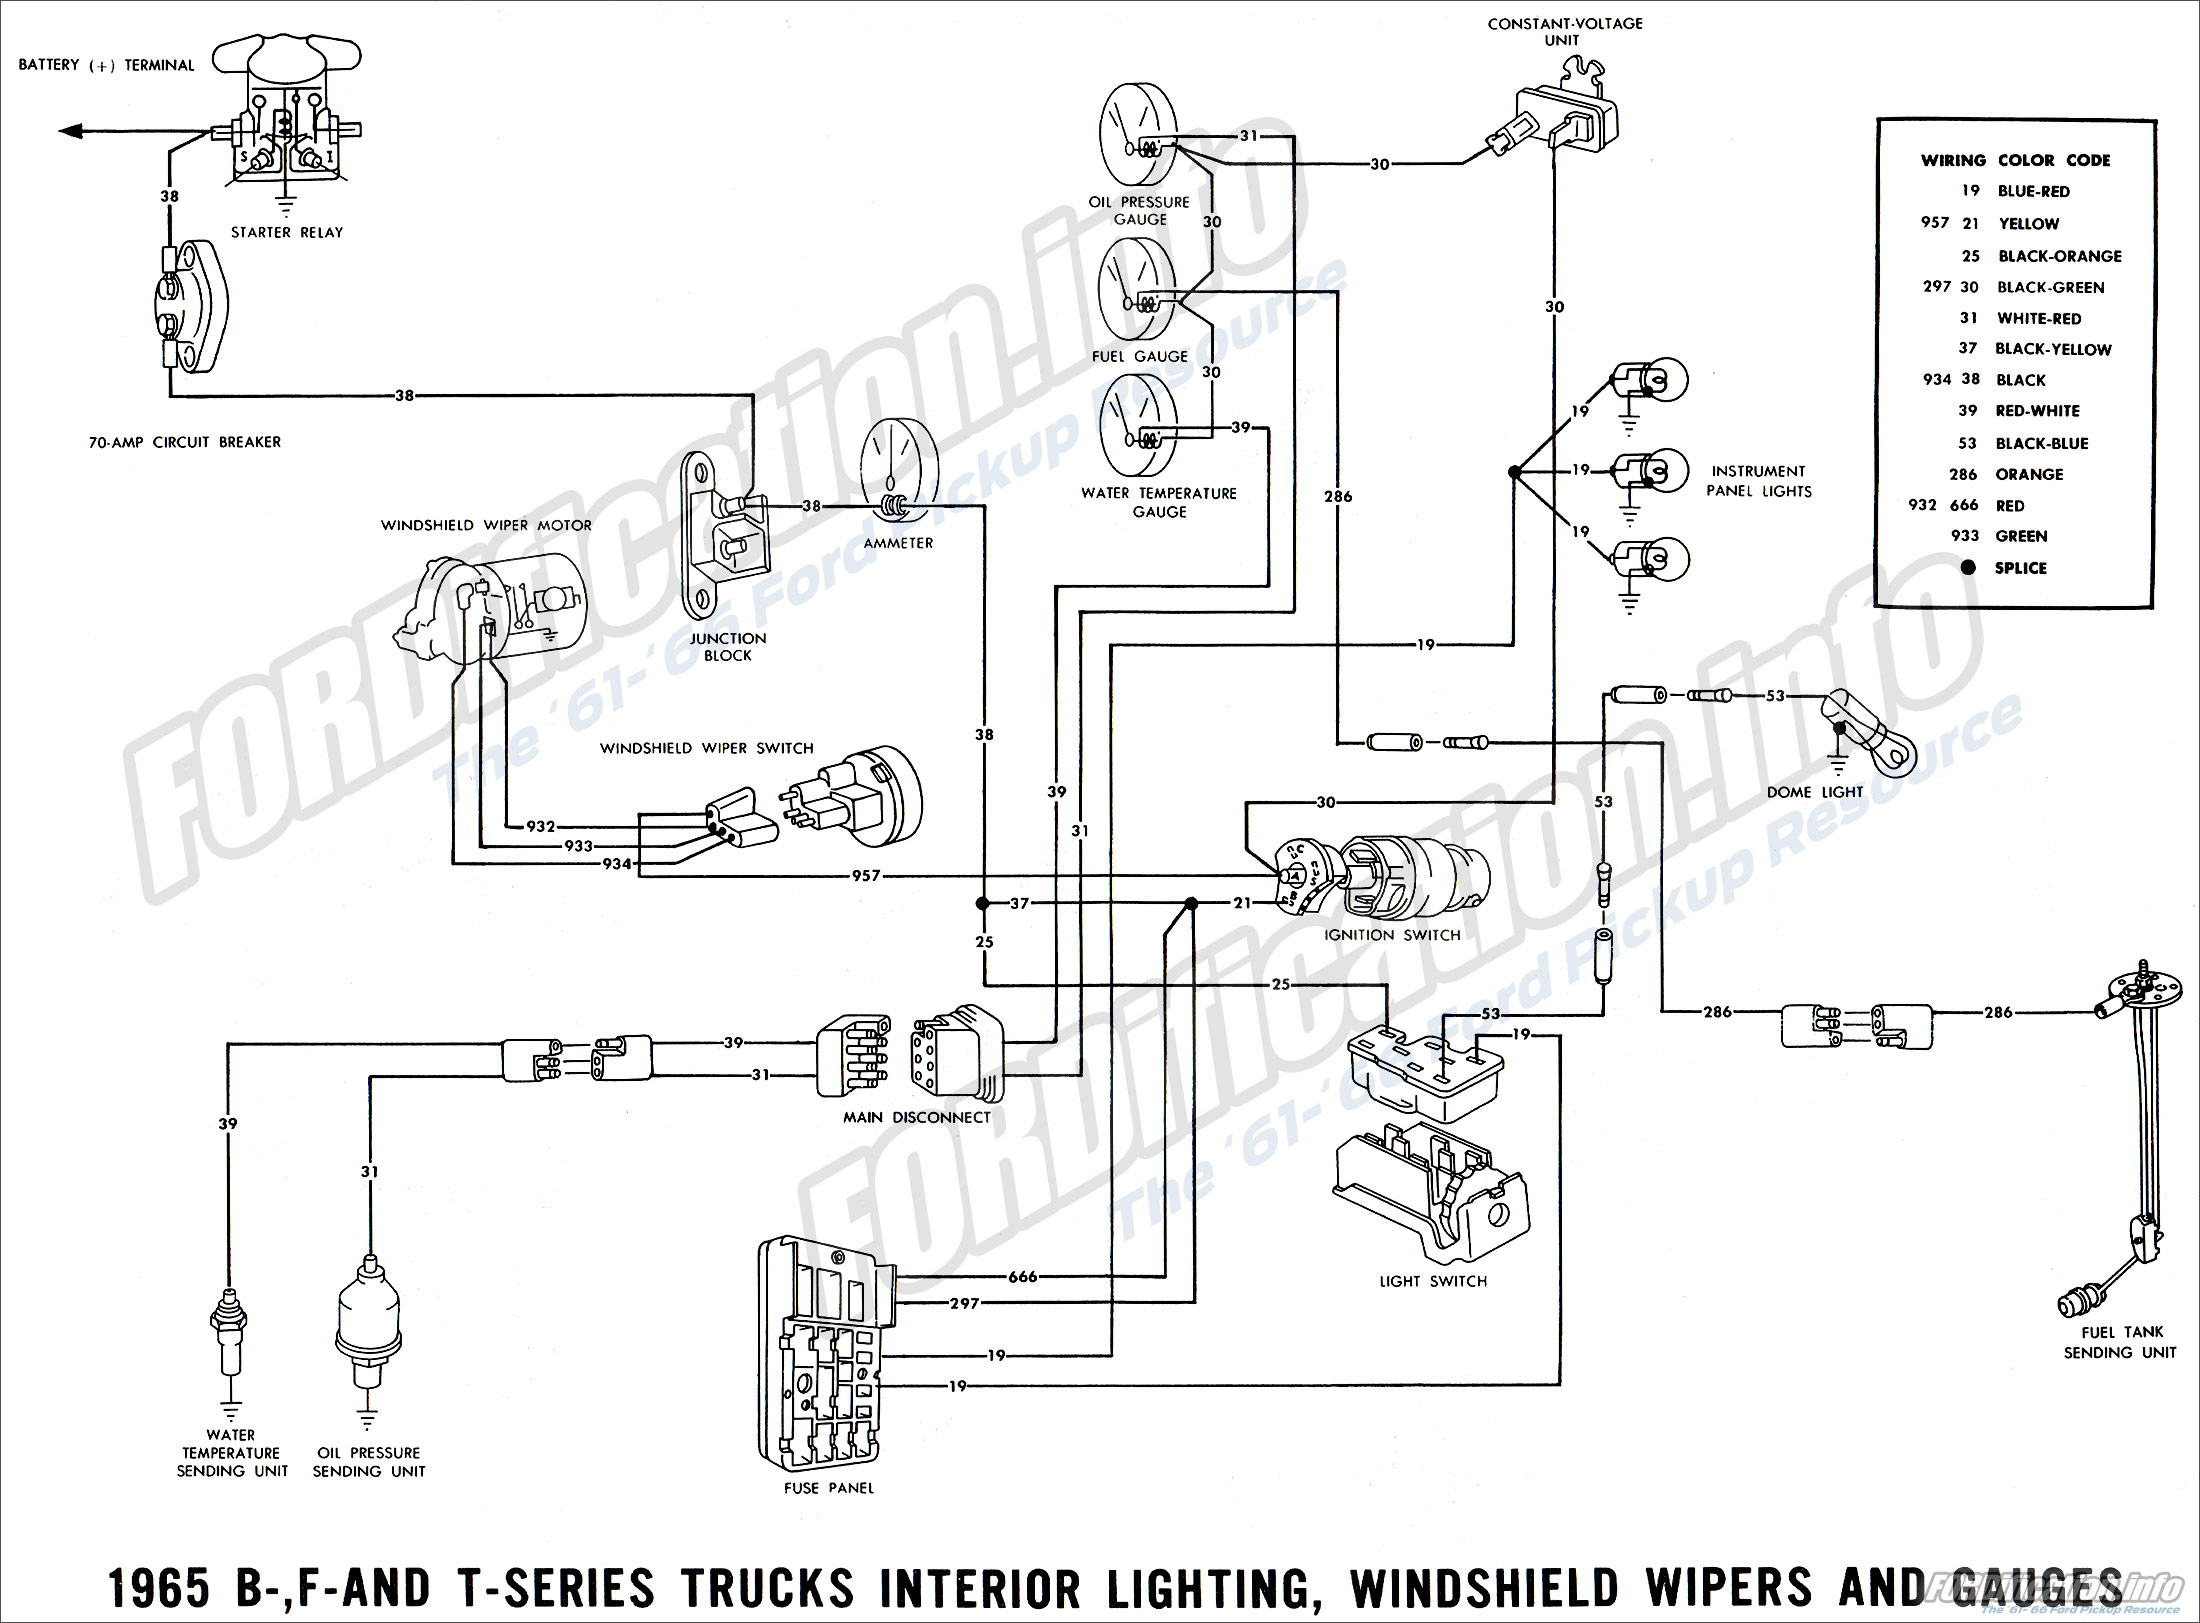 1965 ford truck wiring diagram 30 wiring diagram images 61 Chevy Truck 61 Chevy Truck